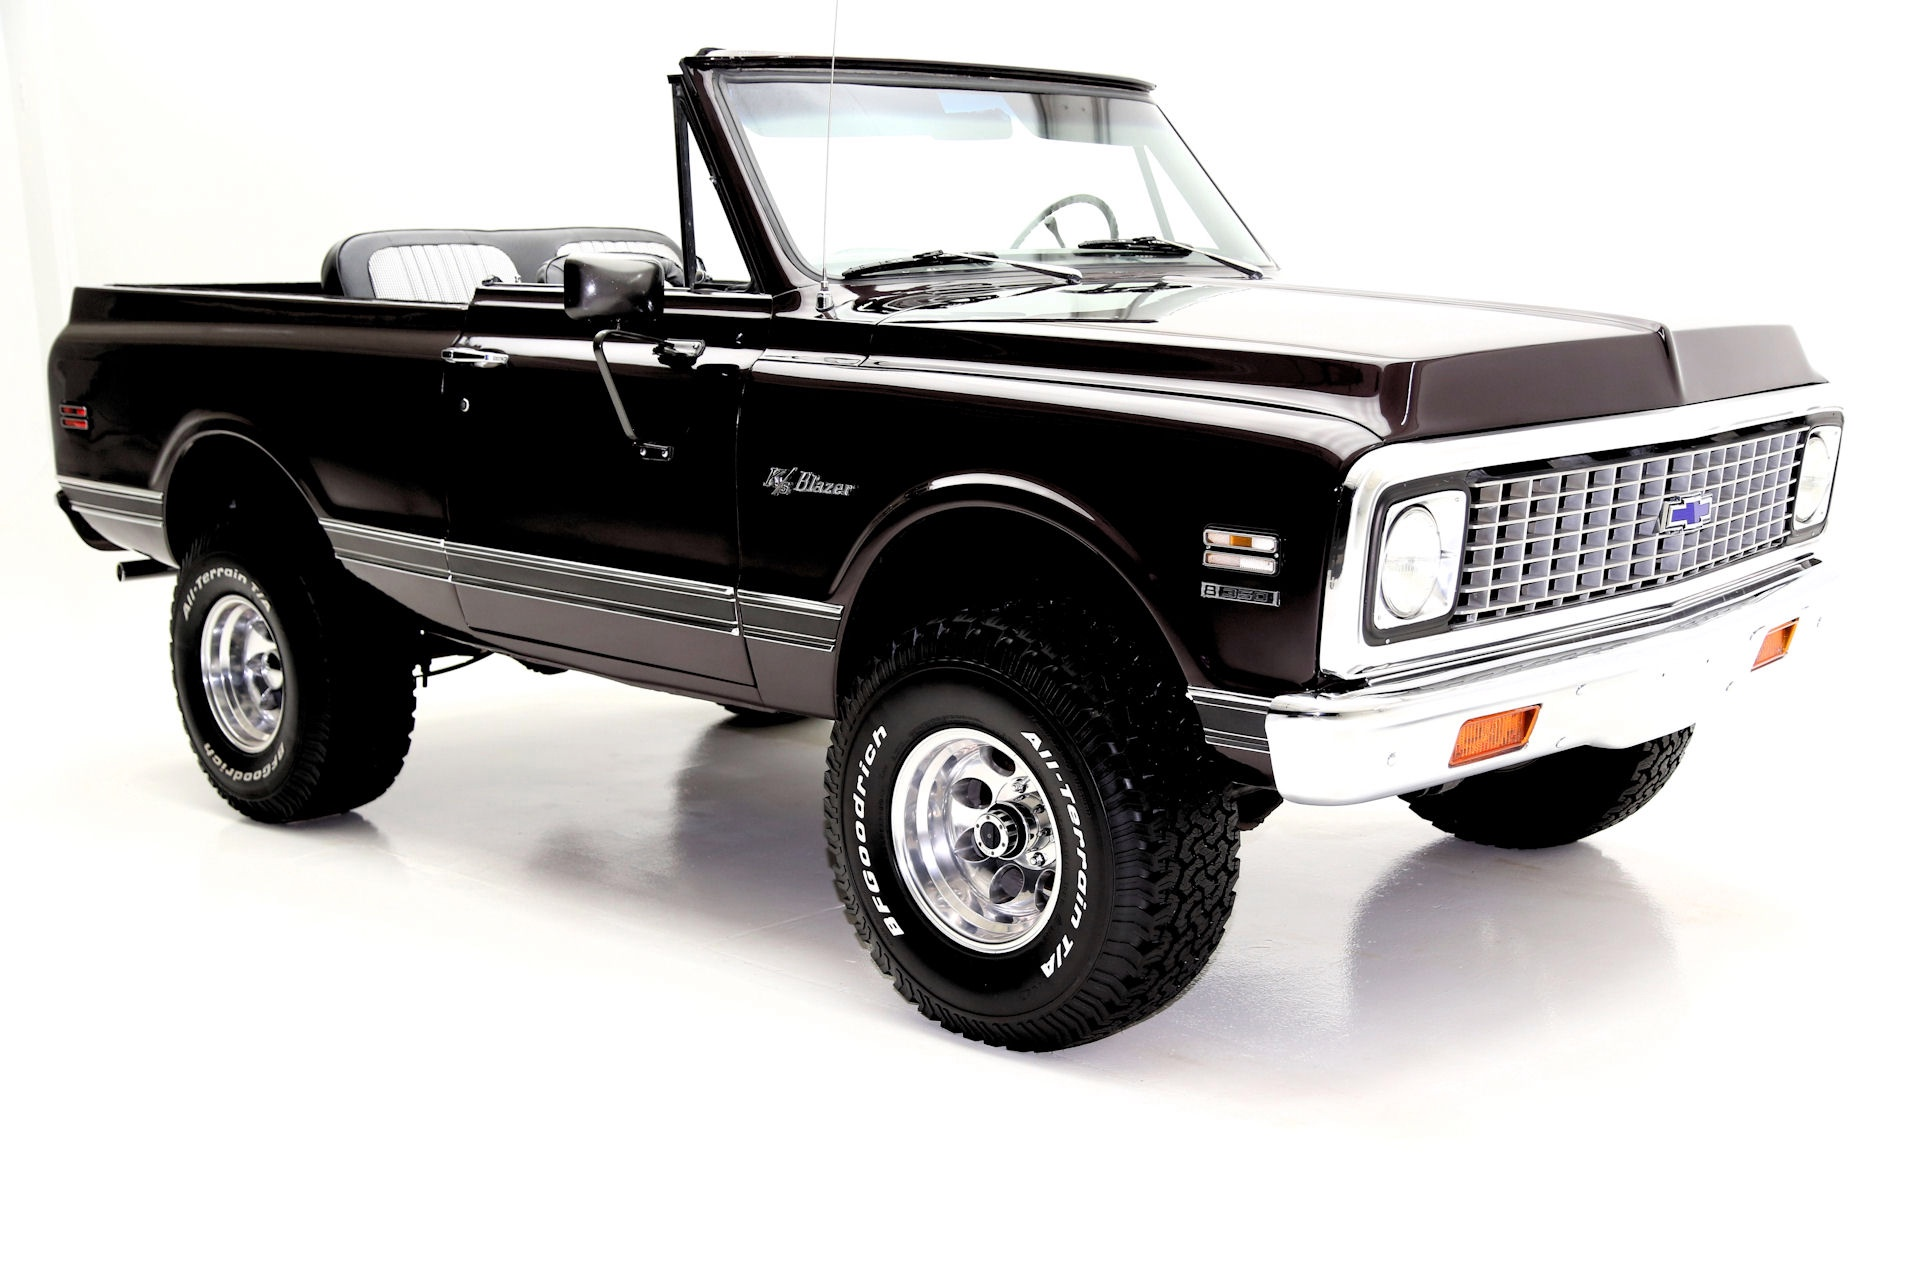 1972 Chevrolet K5 Blazer Black Cherry 4x4 Houndstooth